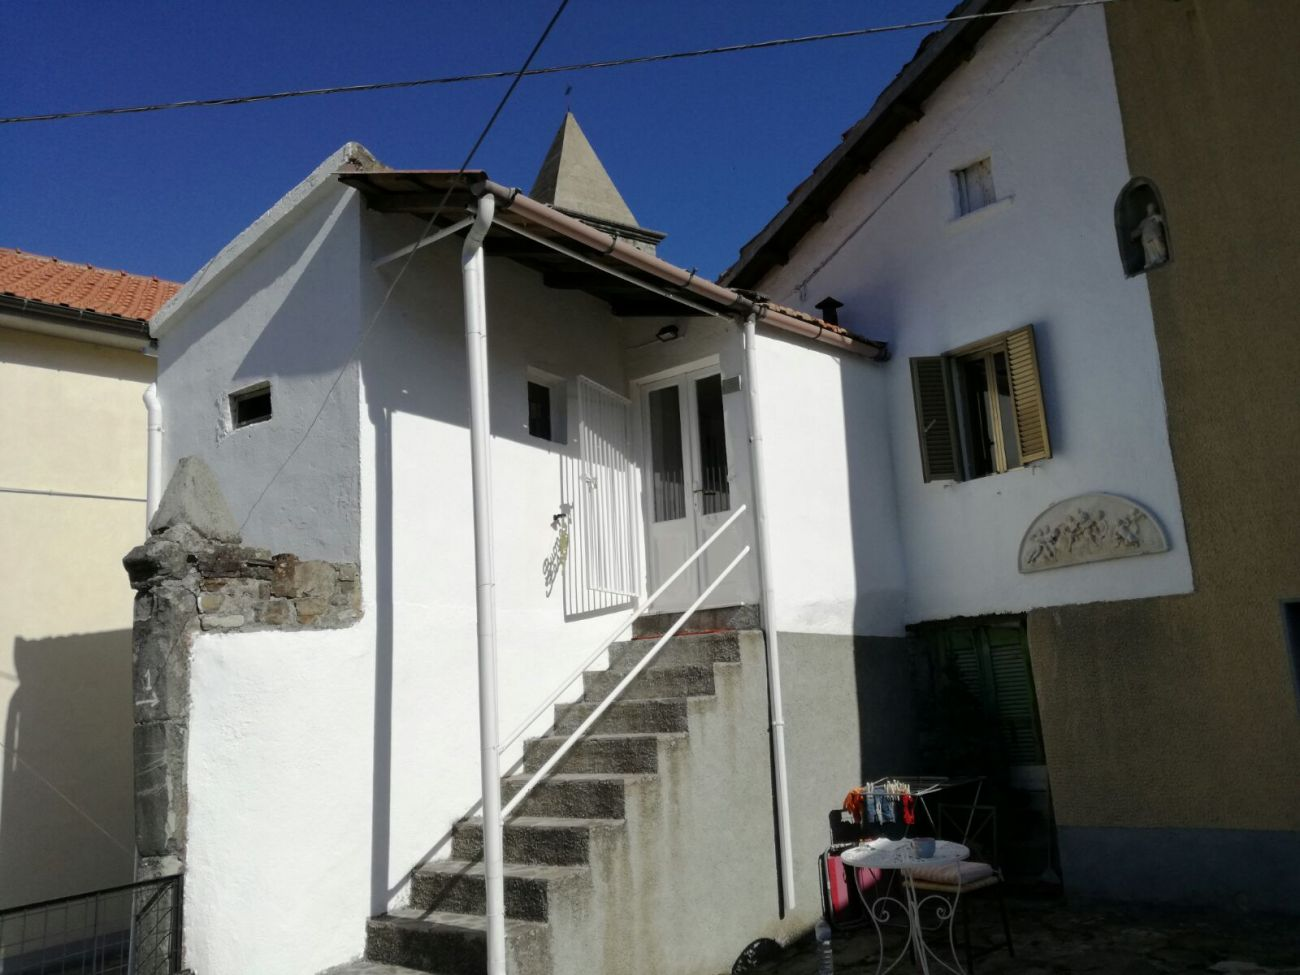 PONTREMOLI COLLINE – SMALL HOUSE WITH AIA TERRACE